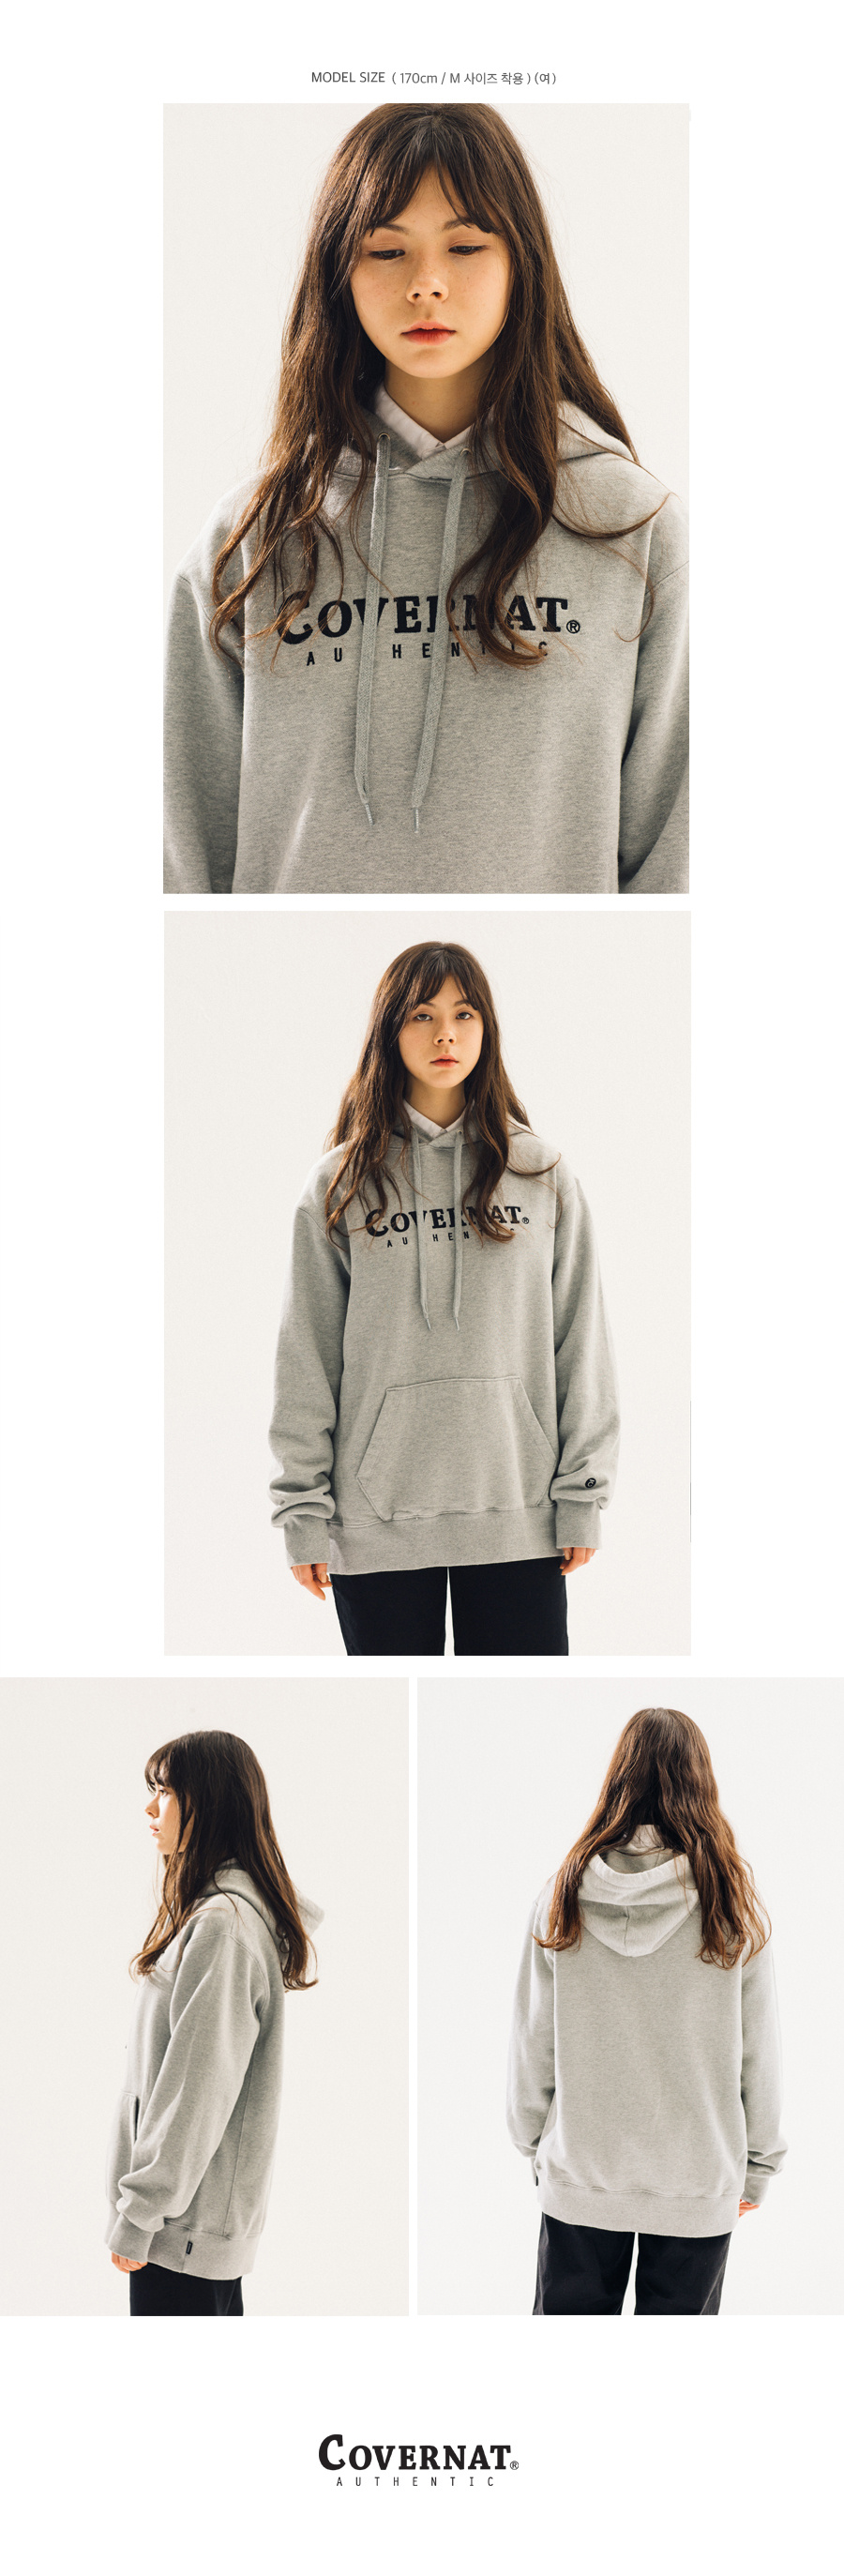 커버낫(COVERNAT) AUTHENTIC LOGO HOODIE GRAY